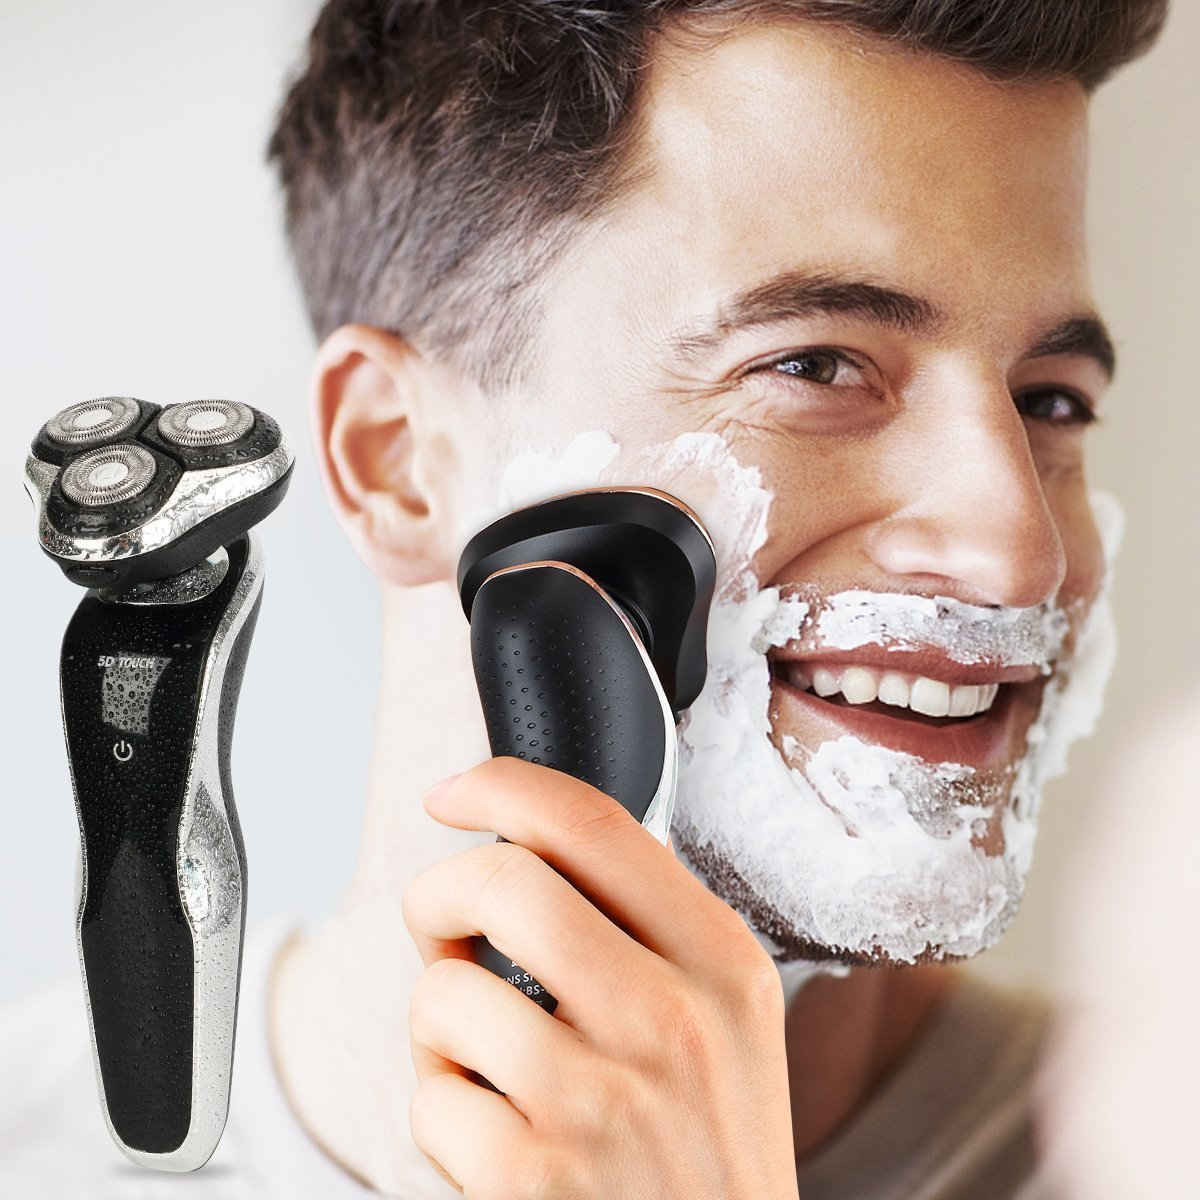 4 in 1 Electric Razor Shavers for Men Portable UBS Rechargeable Travel Wireless Beard Nose Trimmer Kit Wet Dry Facial Rotary Shaver Cordless Waterproof Best Gift Set